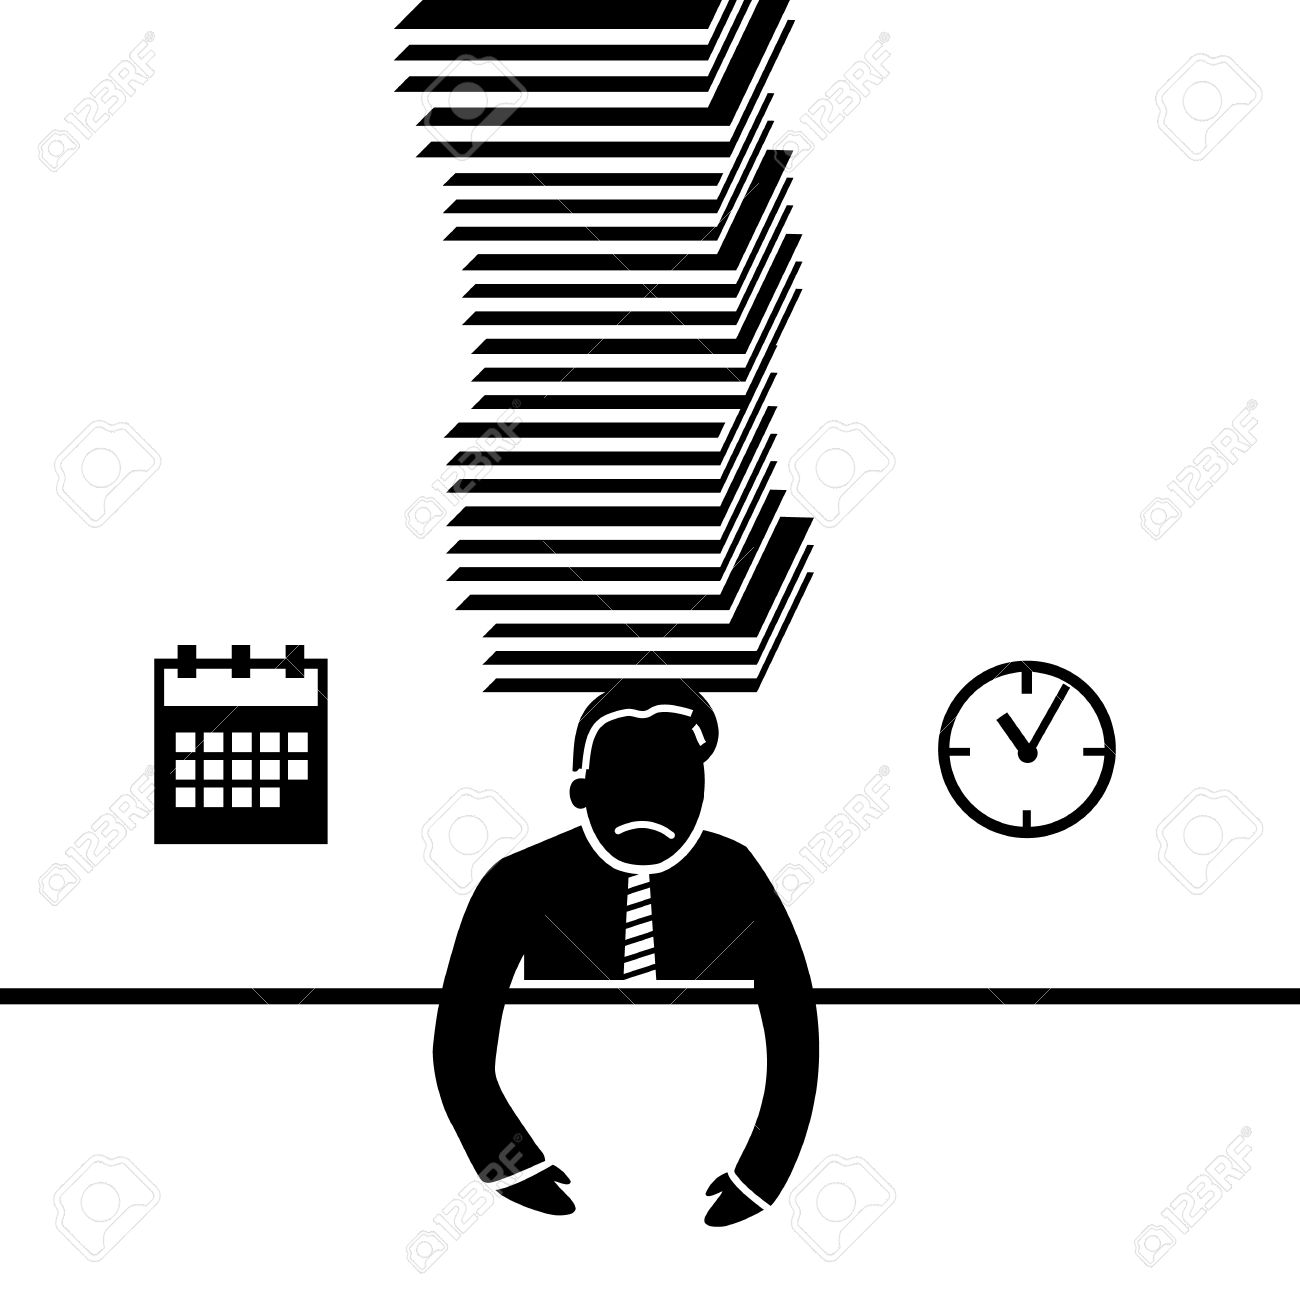 Under Pressure Clip Art for Businesses.